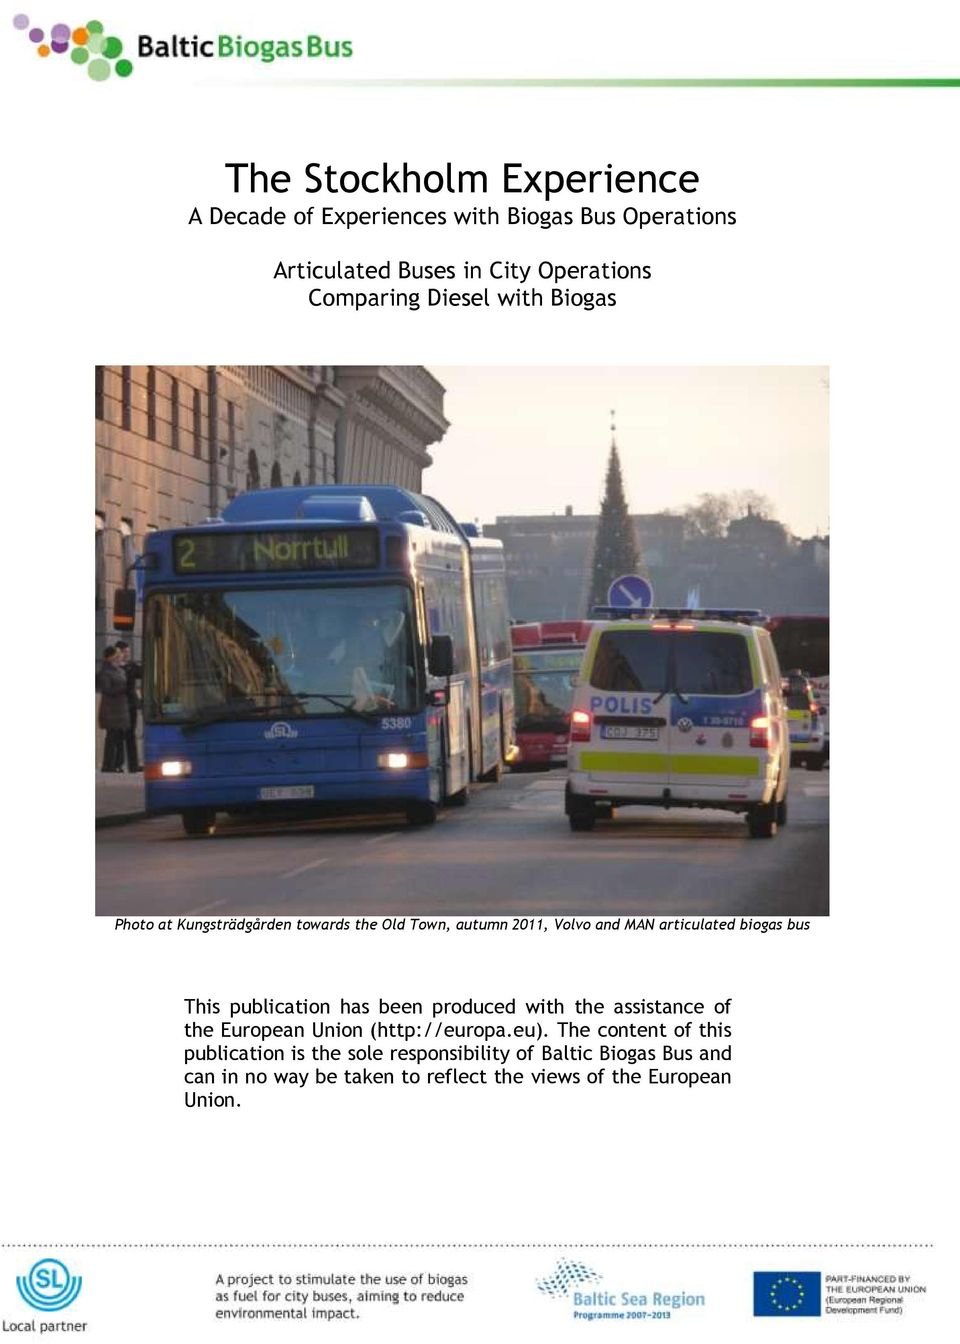 bus This publication has been produced with the assistance of the European Union (http://europa.eu).